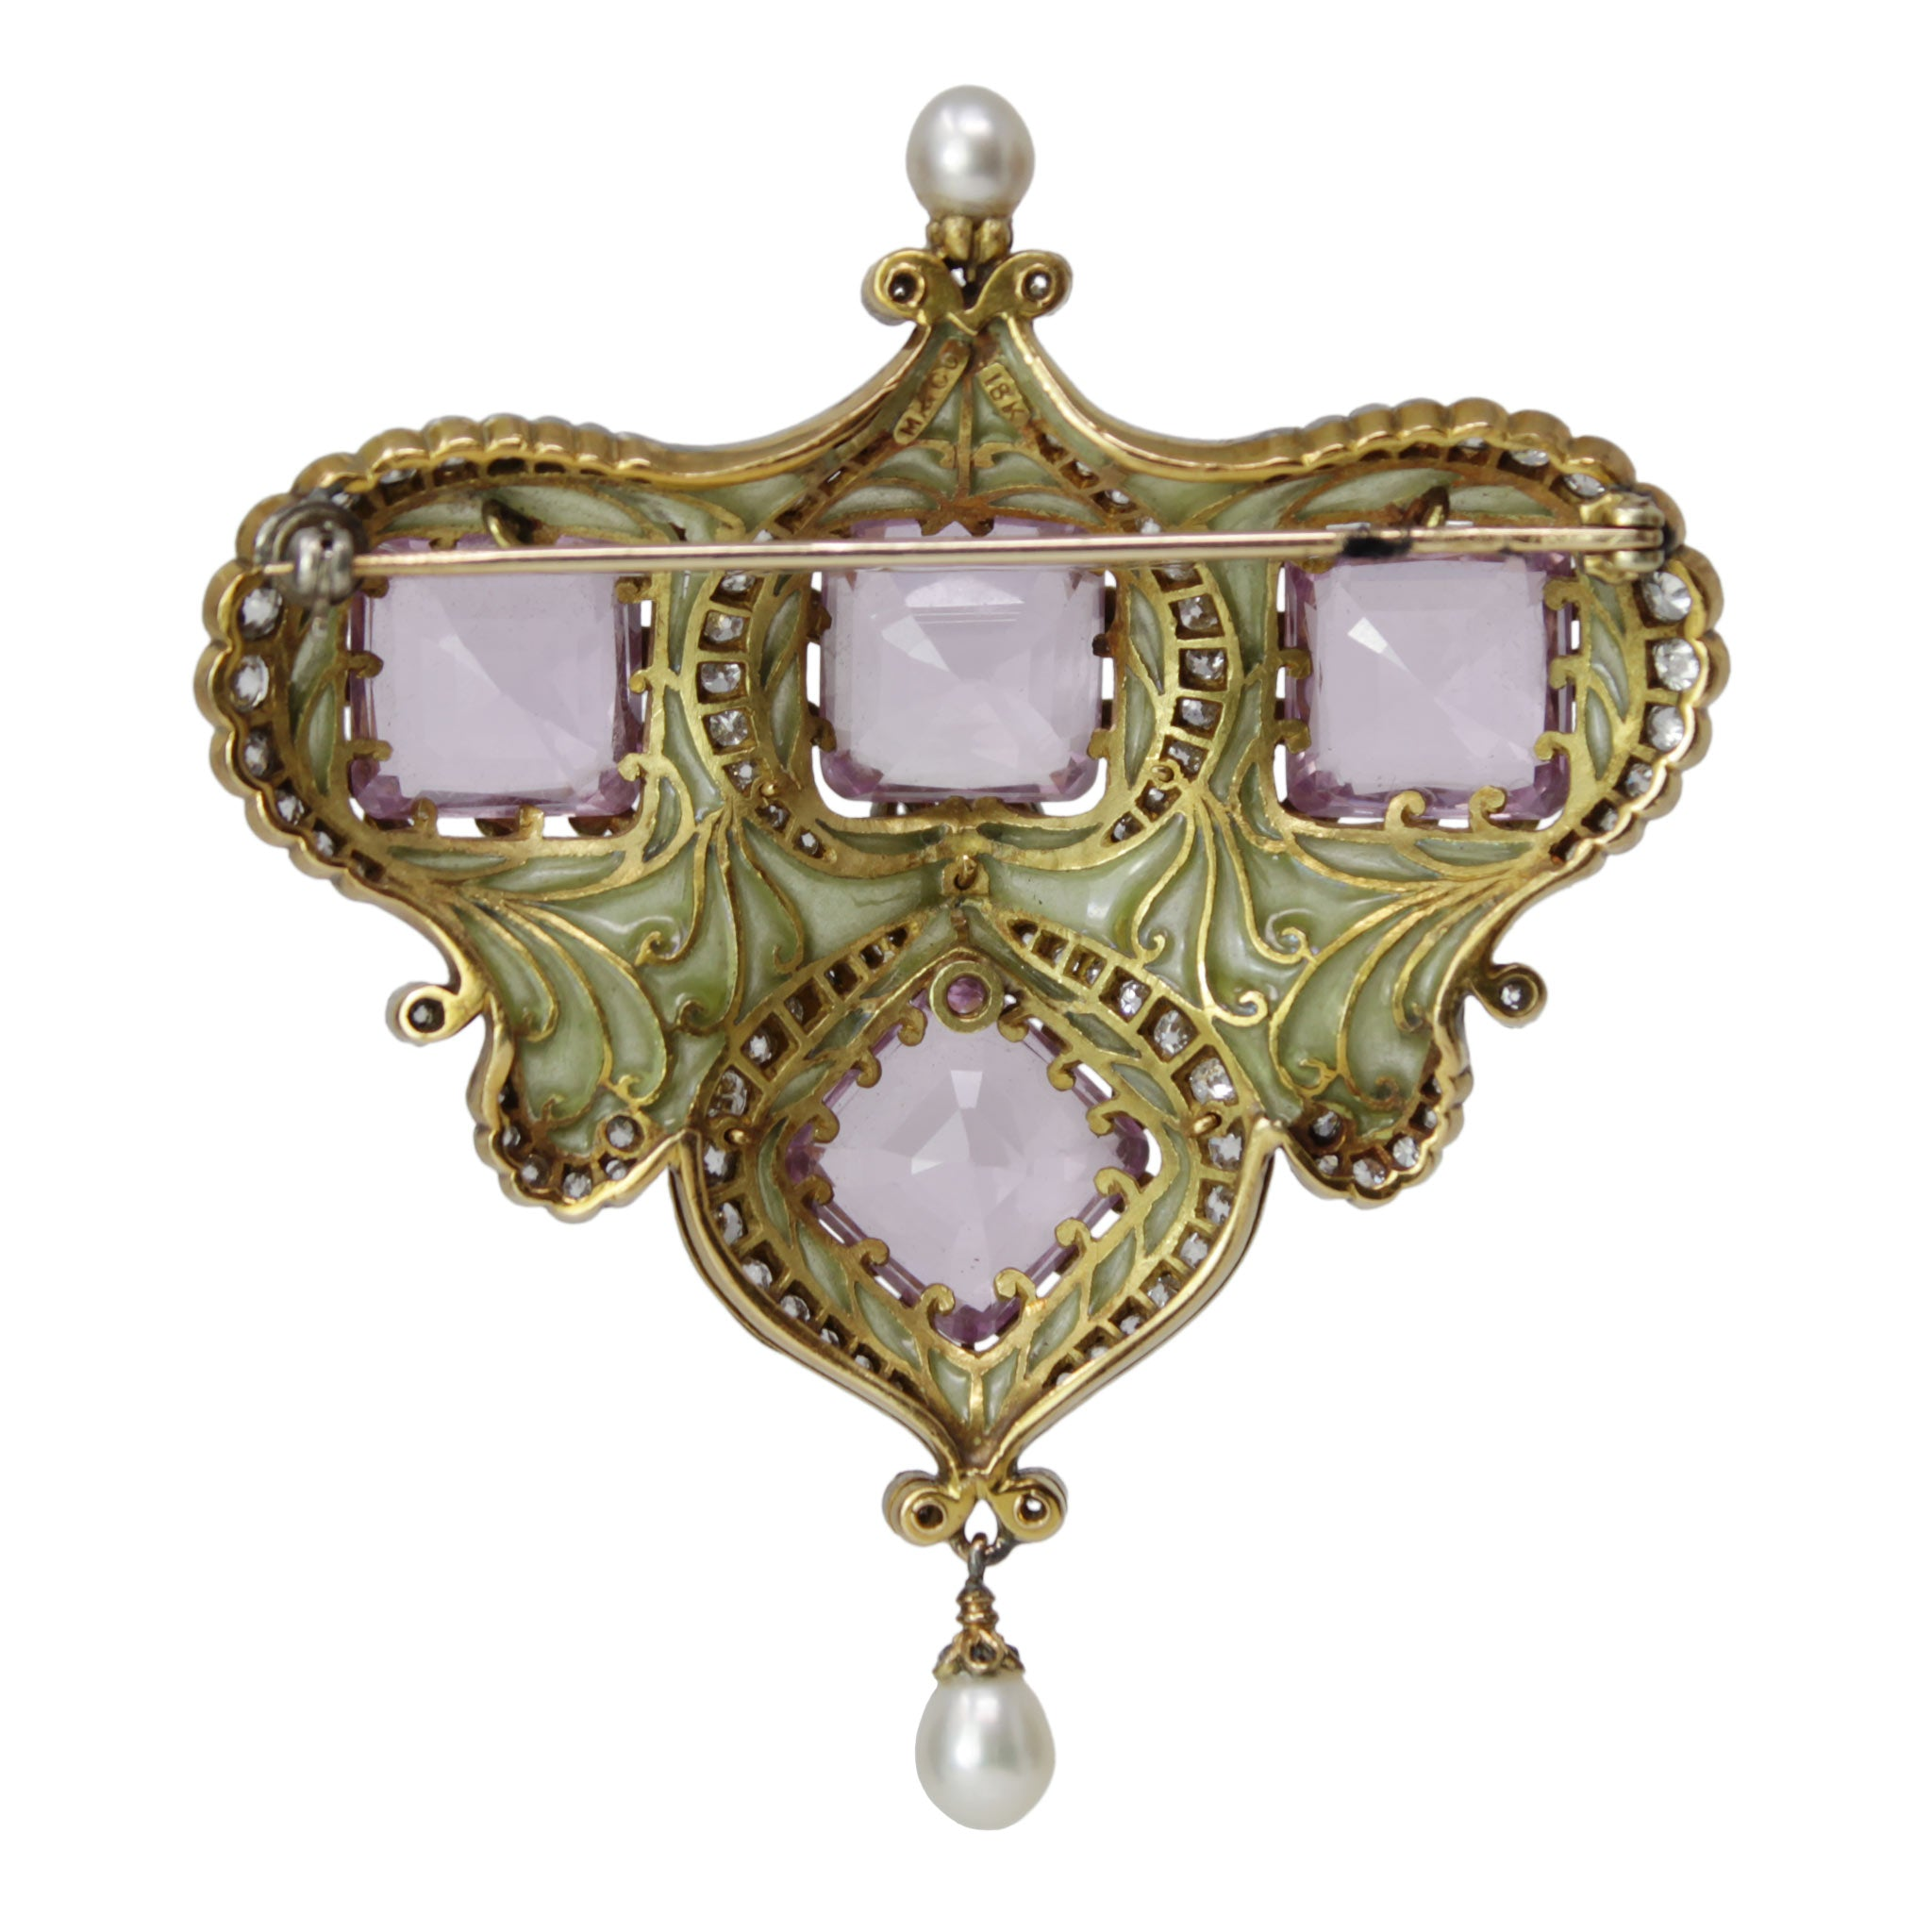 Lyrics To The Heart Brooch - 19th Century Pink Morganite 18kt Yellow Gold and Platinum Brooch Pin